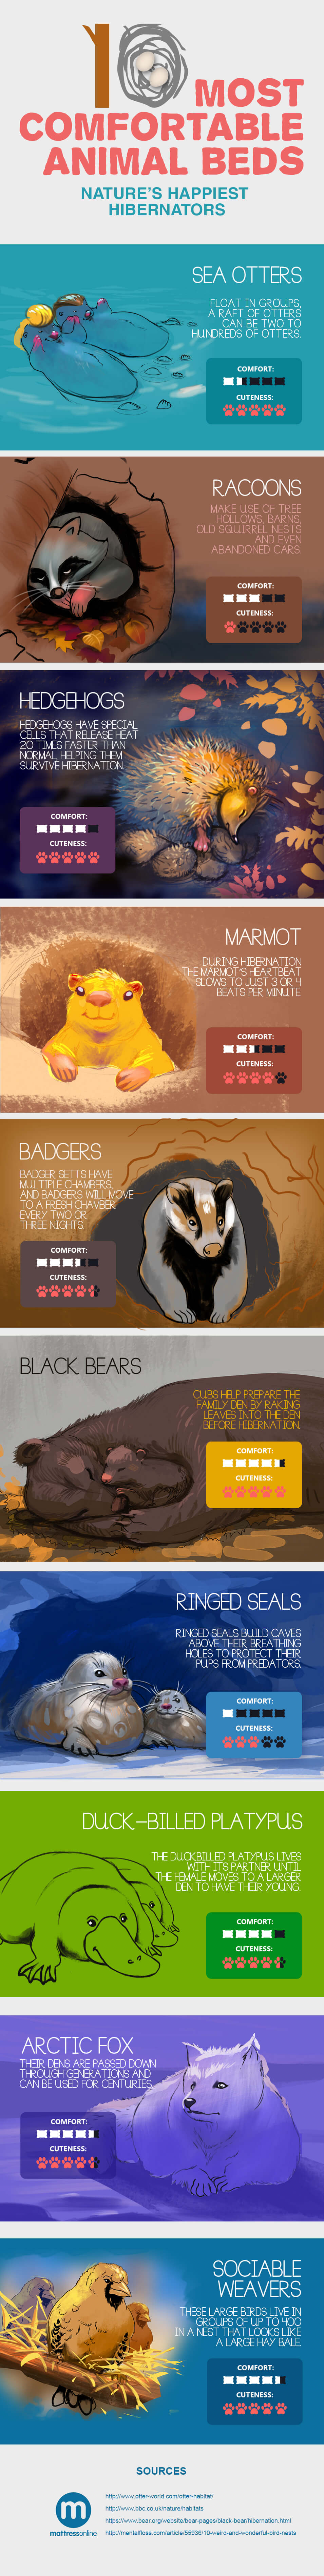 Animal Beds Infographic